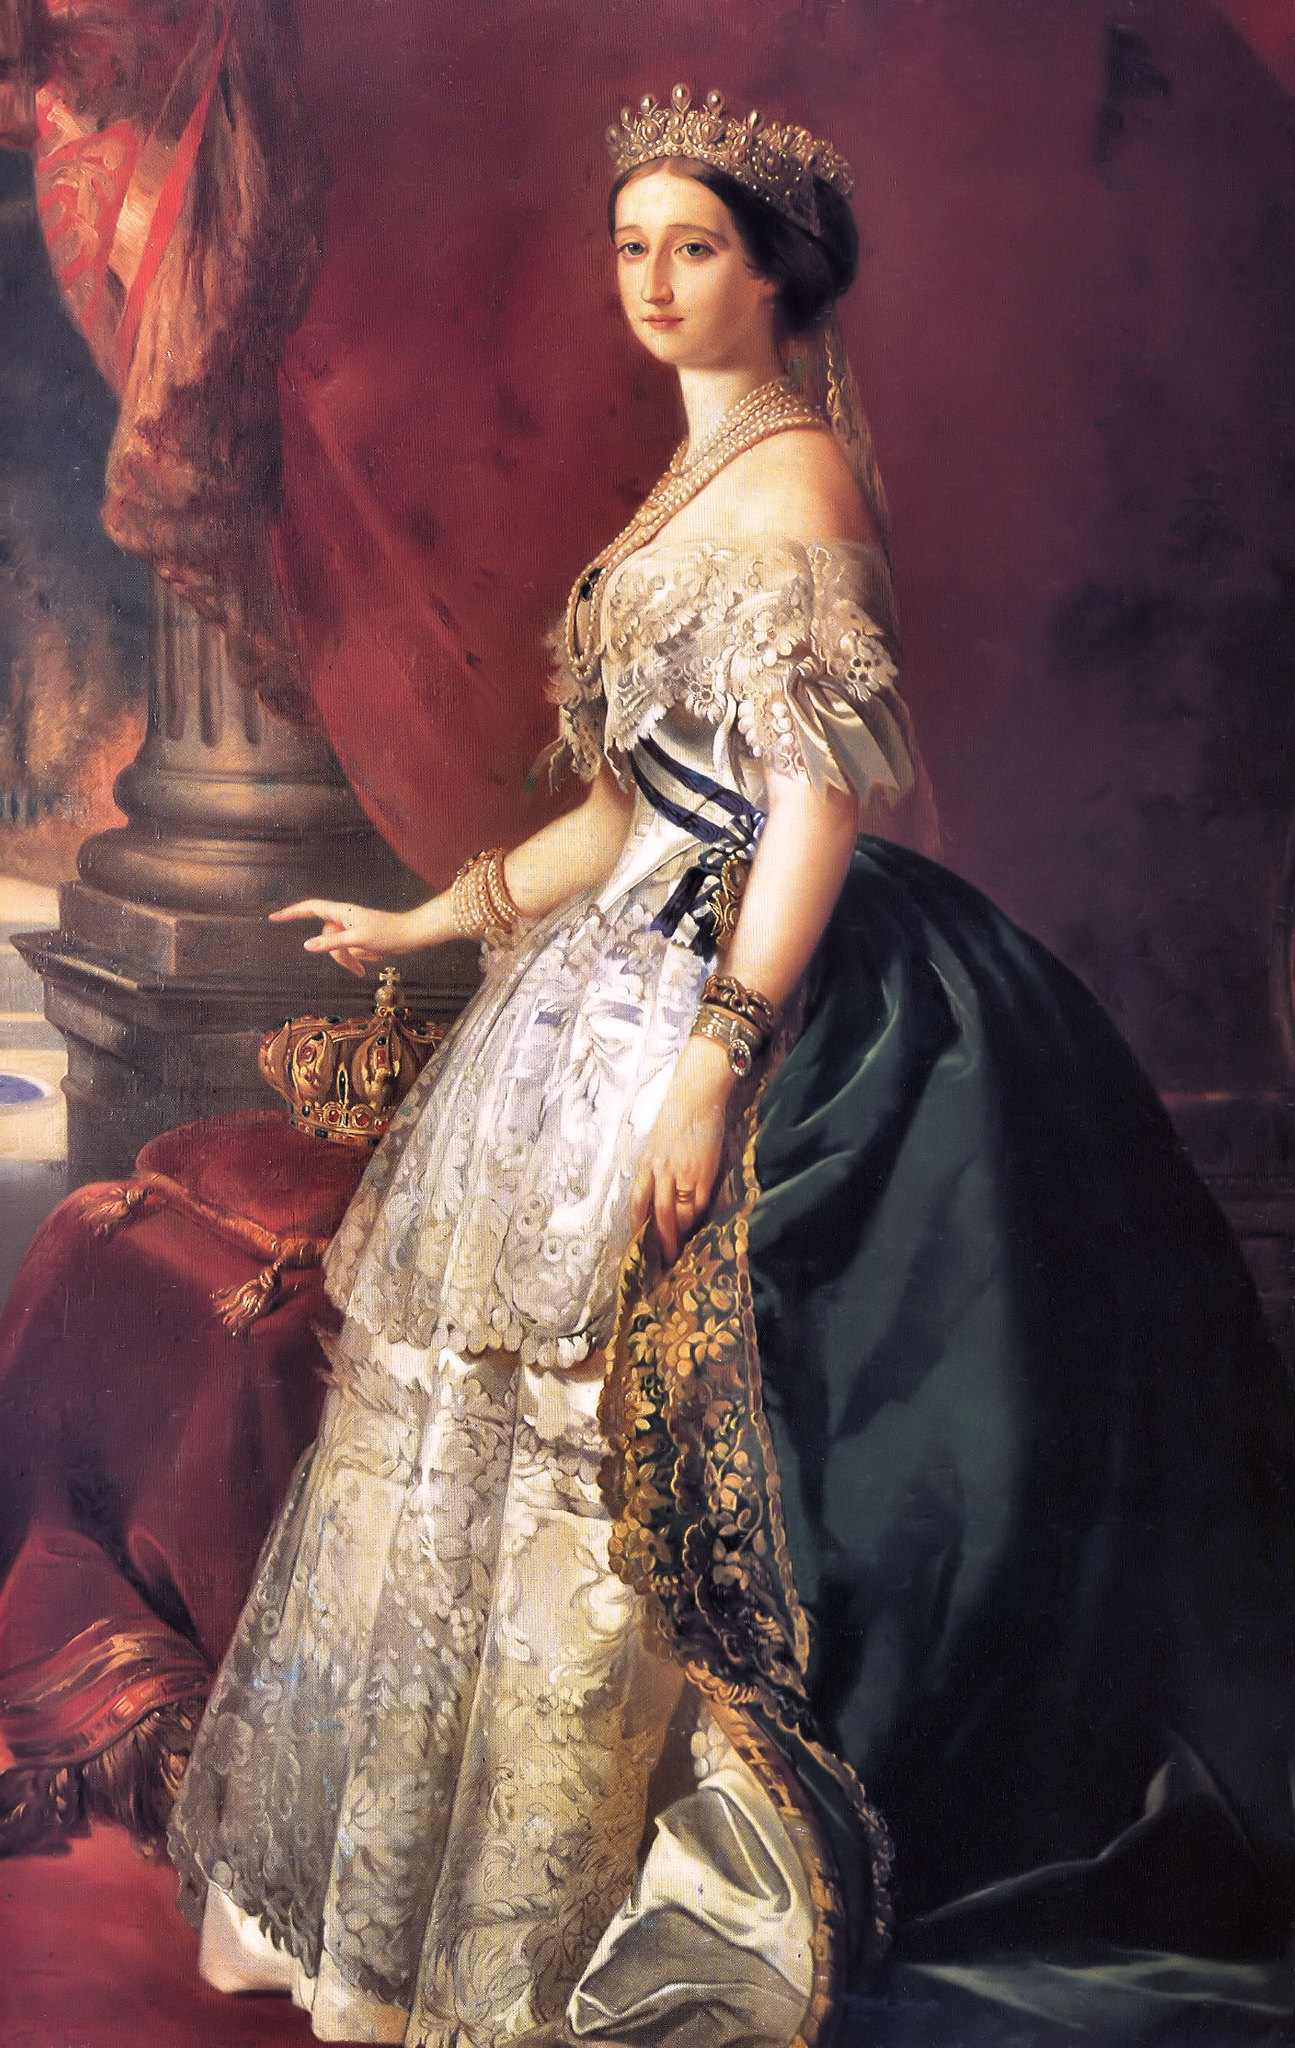 Portrait of the Empress Eugénie (1826-1920) by Franz Xaver Winterhalder, 1853, wearing a gown designed by Worth